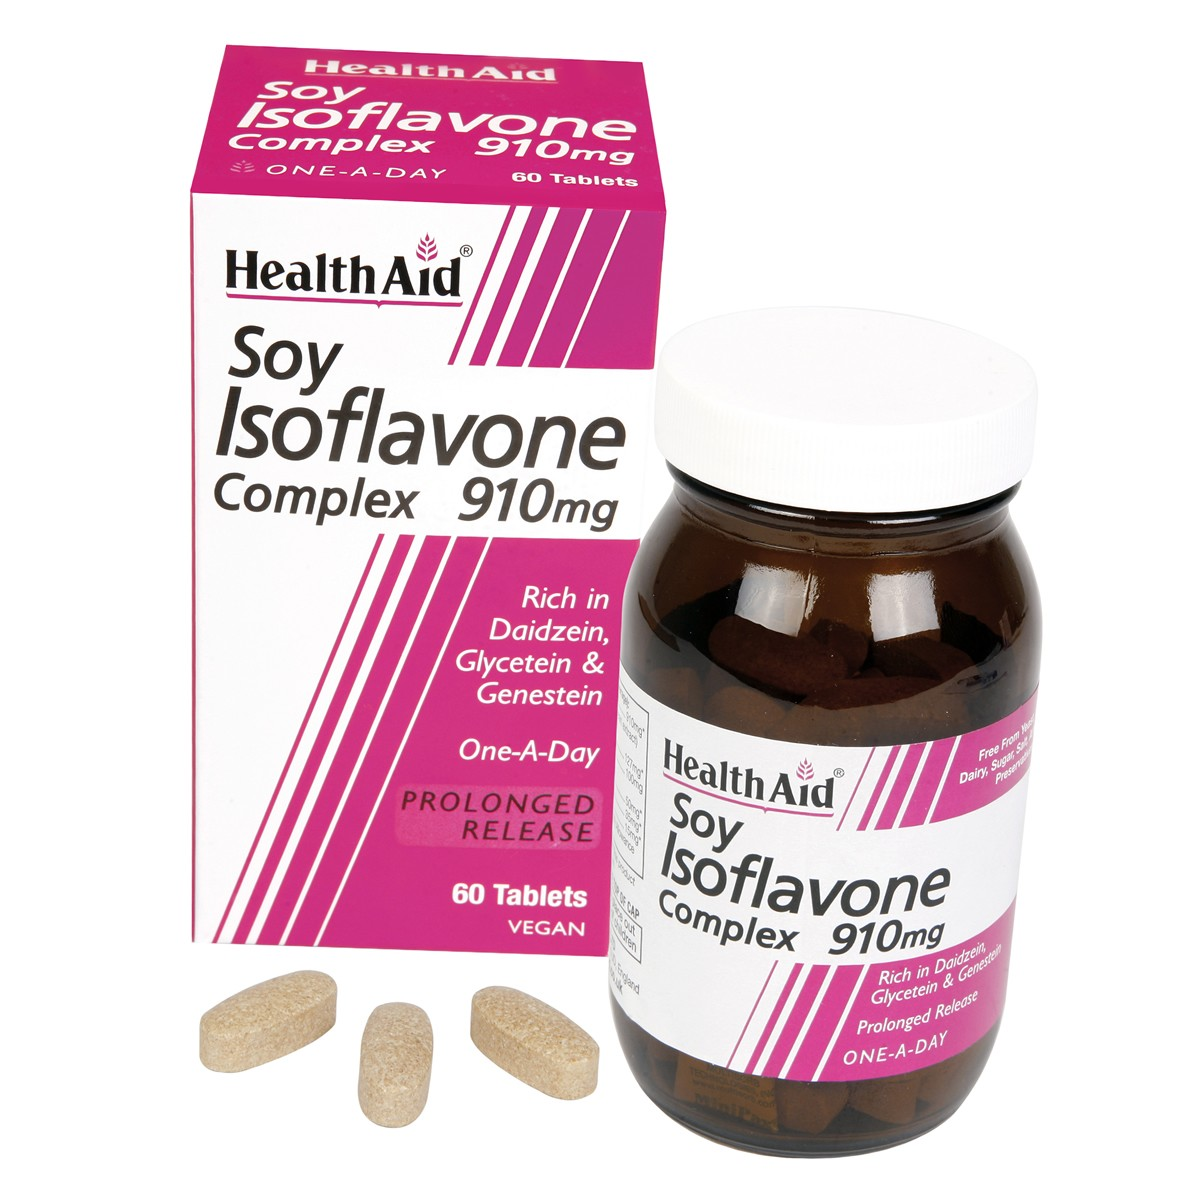 HealthAid Soya Isoflavone Complex 910mg Tablets